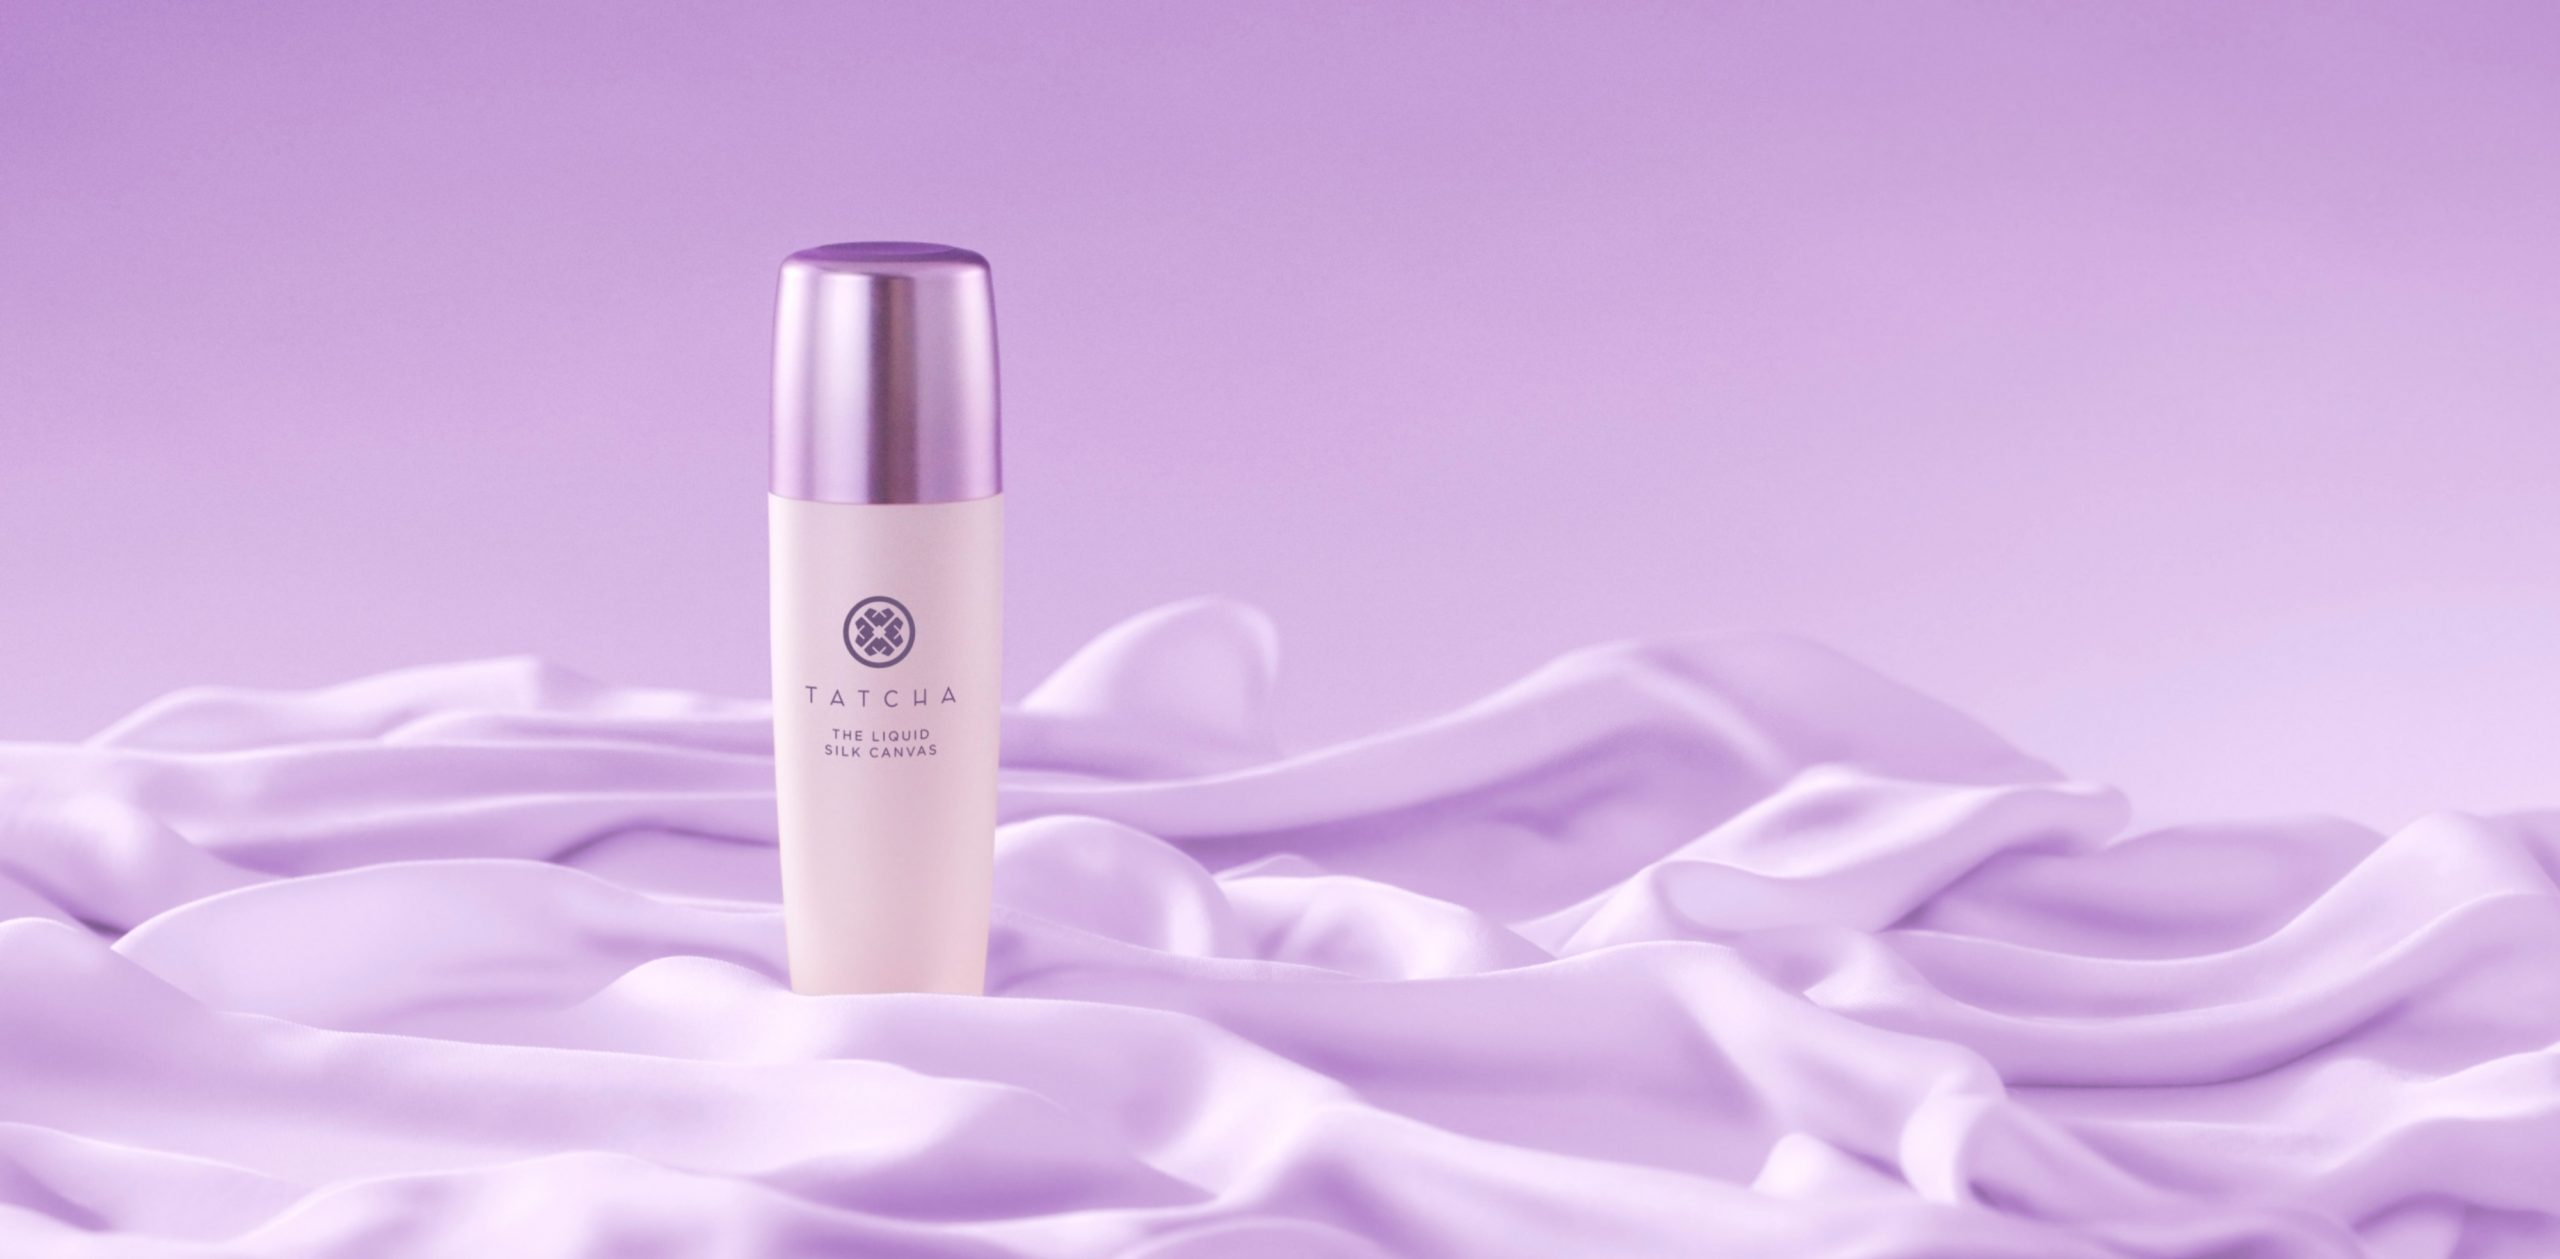 Tatcha Launches Liquid Silk Canvas in Malaysia